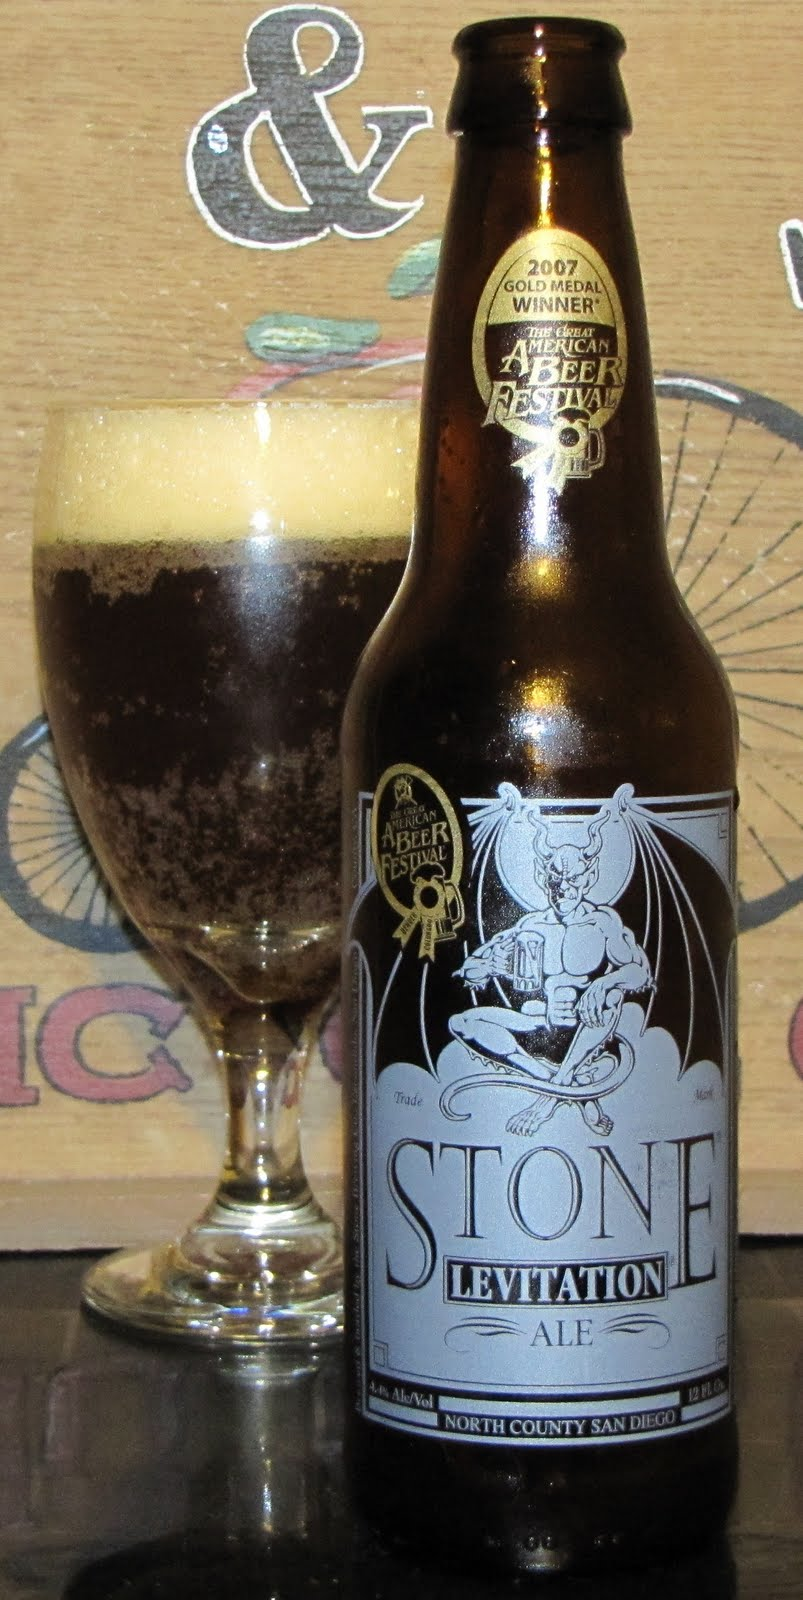 Stone Levitation Beer : Fourboysbrewreview levitation ale stone brewing co